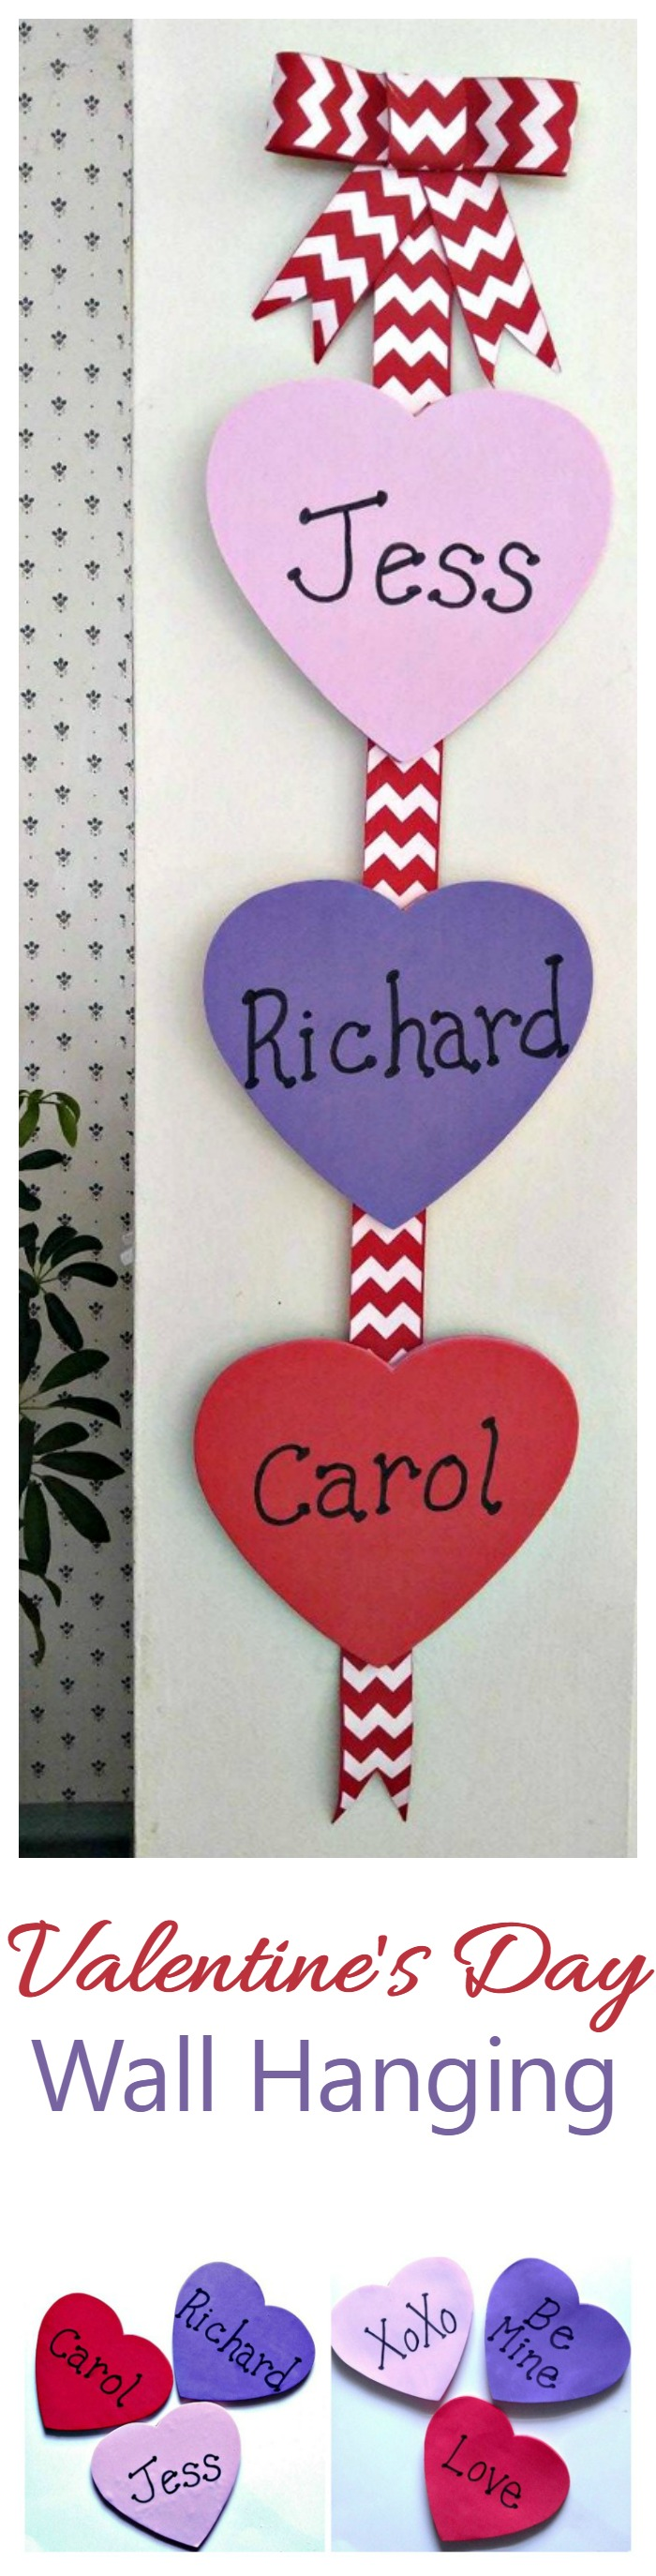 This DIY Valentine's Day Wall Hanging can be made with either the names of those in your family, or you could use love sayings instead. Cute , fun to do and the family will love it!